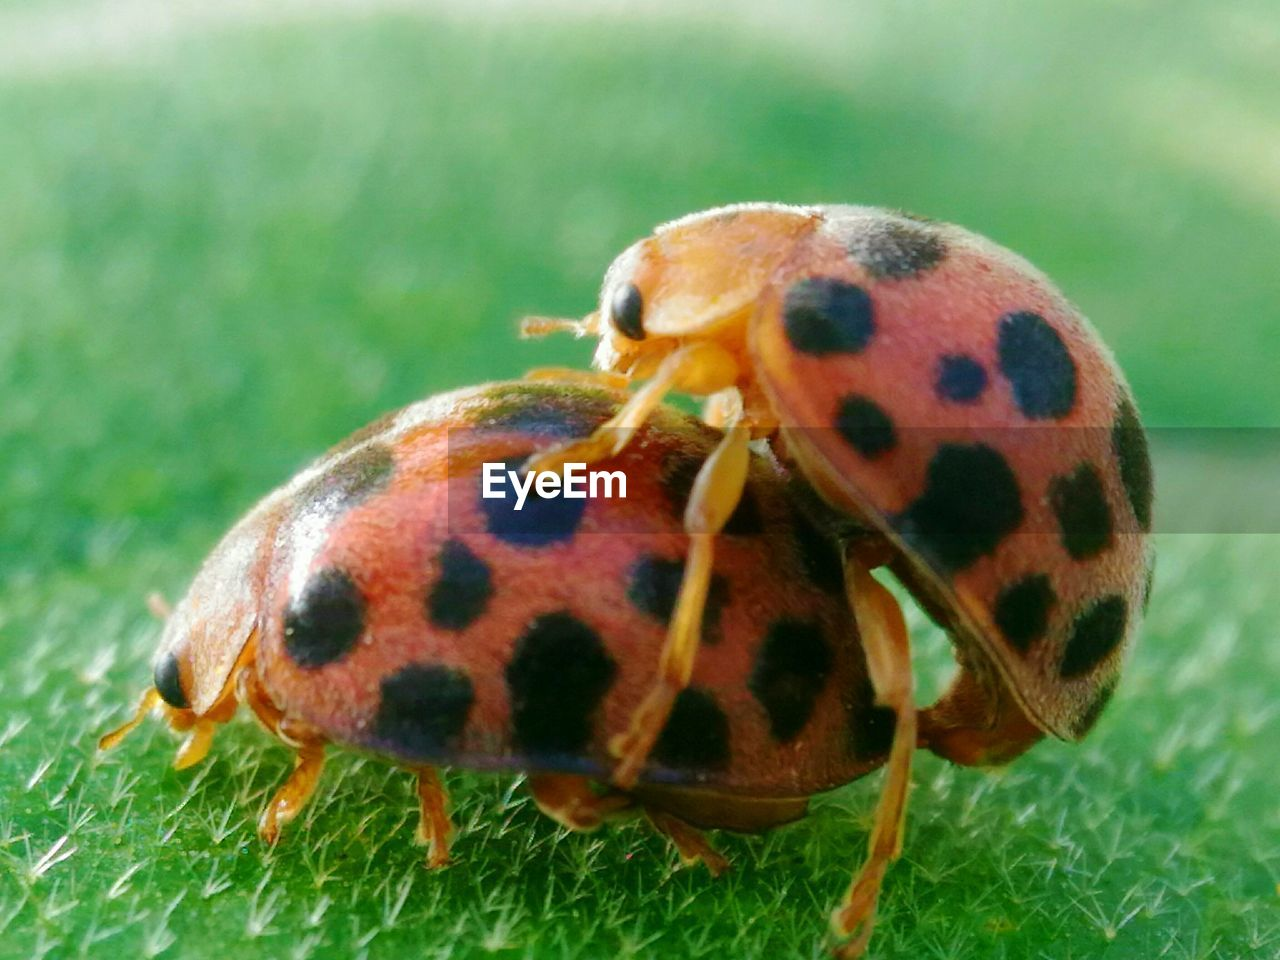 animal themes, animal wildlife, animal, invertebrate, insect, animals in the wild, one animal, close-up, spotted, beetle, no people, nature, focus on foreground, day, plant, animal markings, ladybug, plant part, animal eye